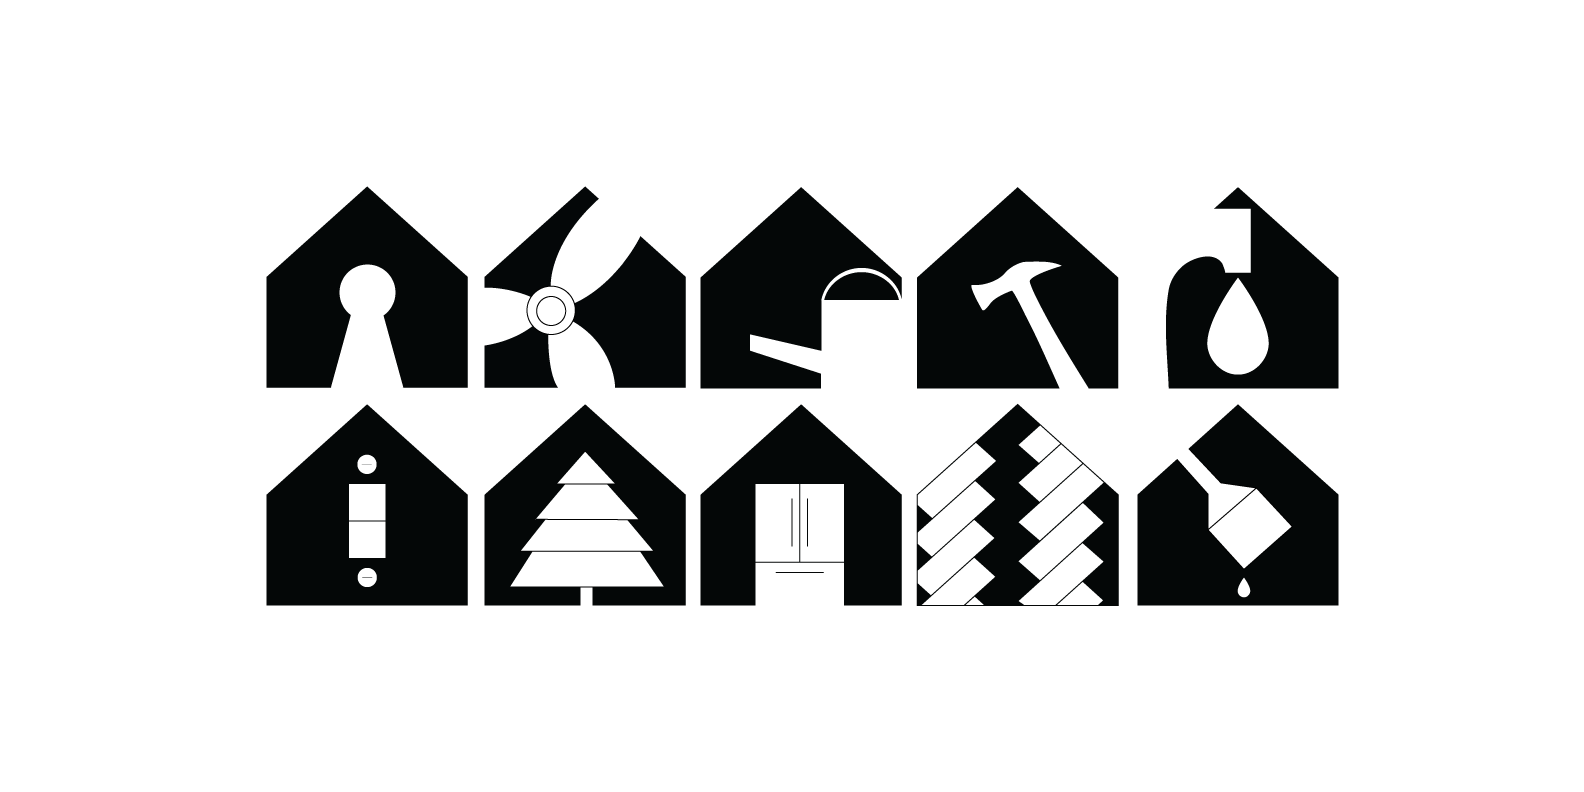 bg_hardware_store_pictograms.png